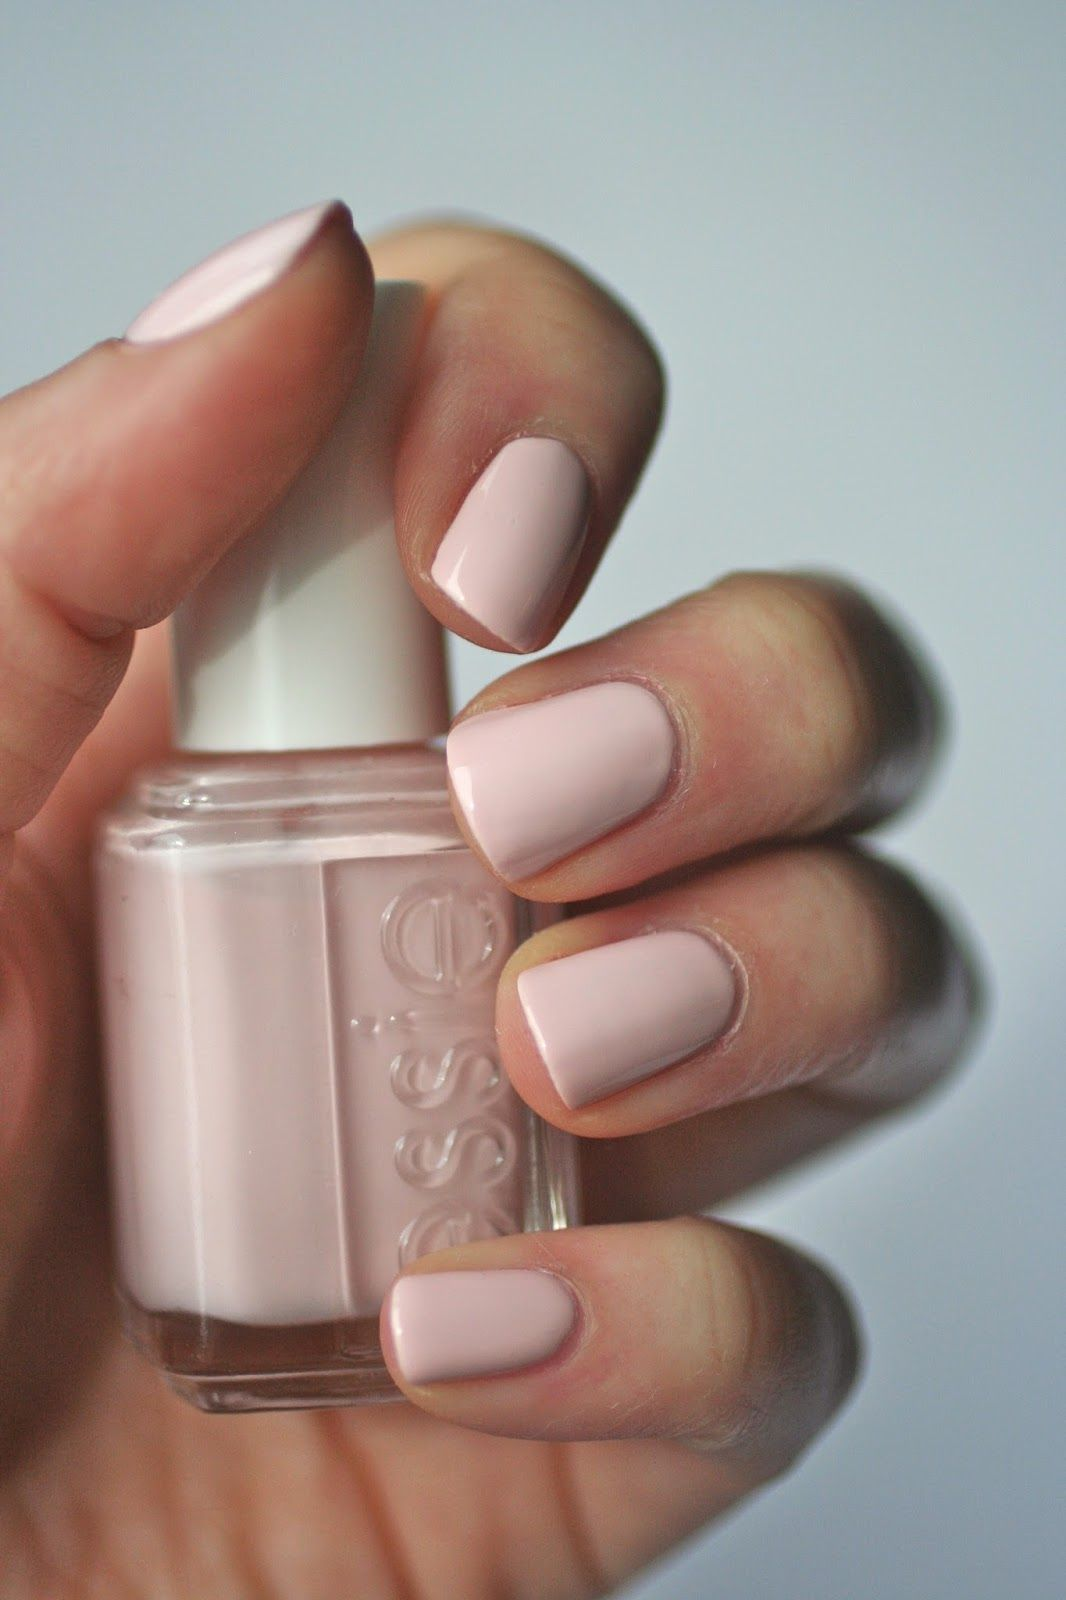 Essie Pale Pink Comparison Ballet Slippers Minimalistic Romper Room Fiji Essie Envy Nail Polish Bridal Nails Beautiful Nails